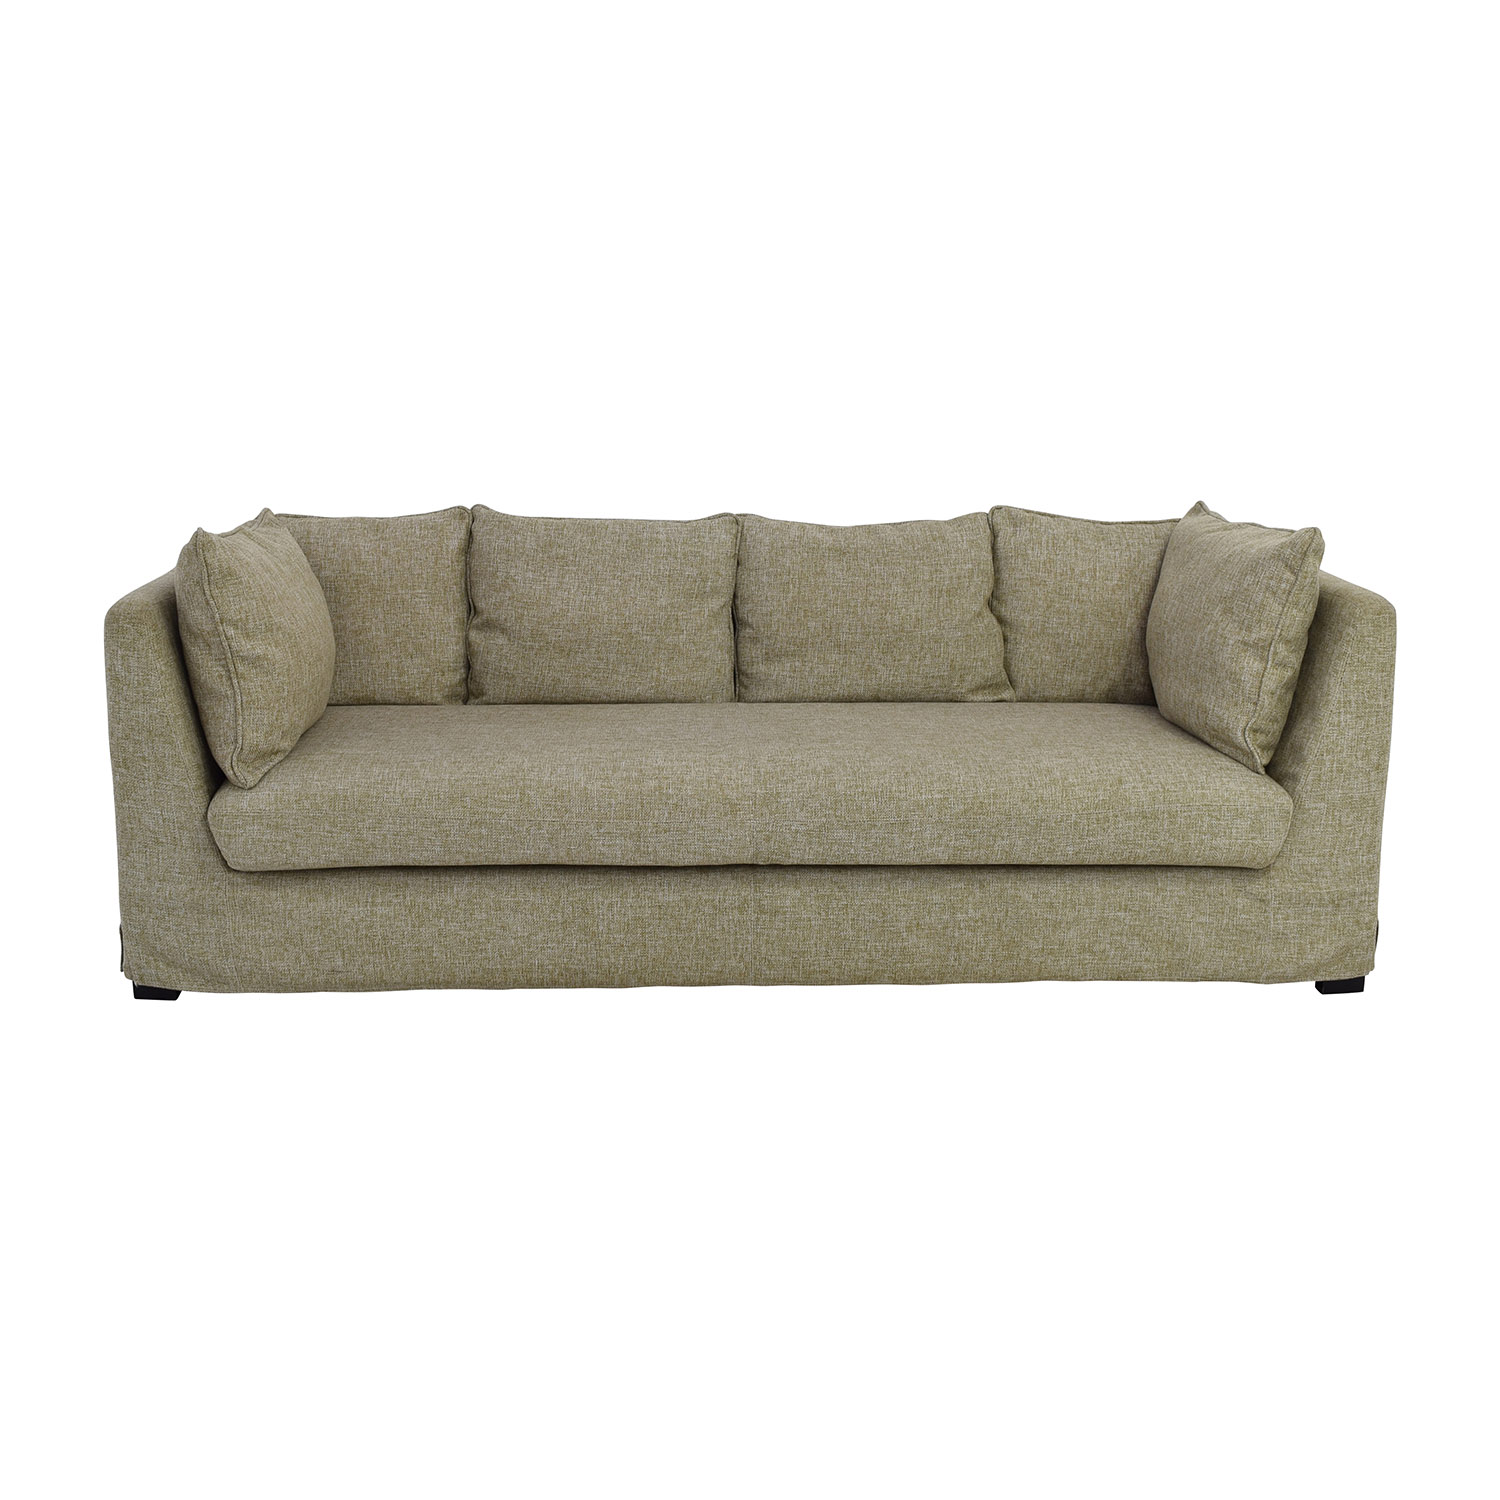 shop Beige Latte Three Seater Sofa online